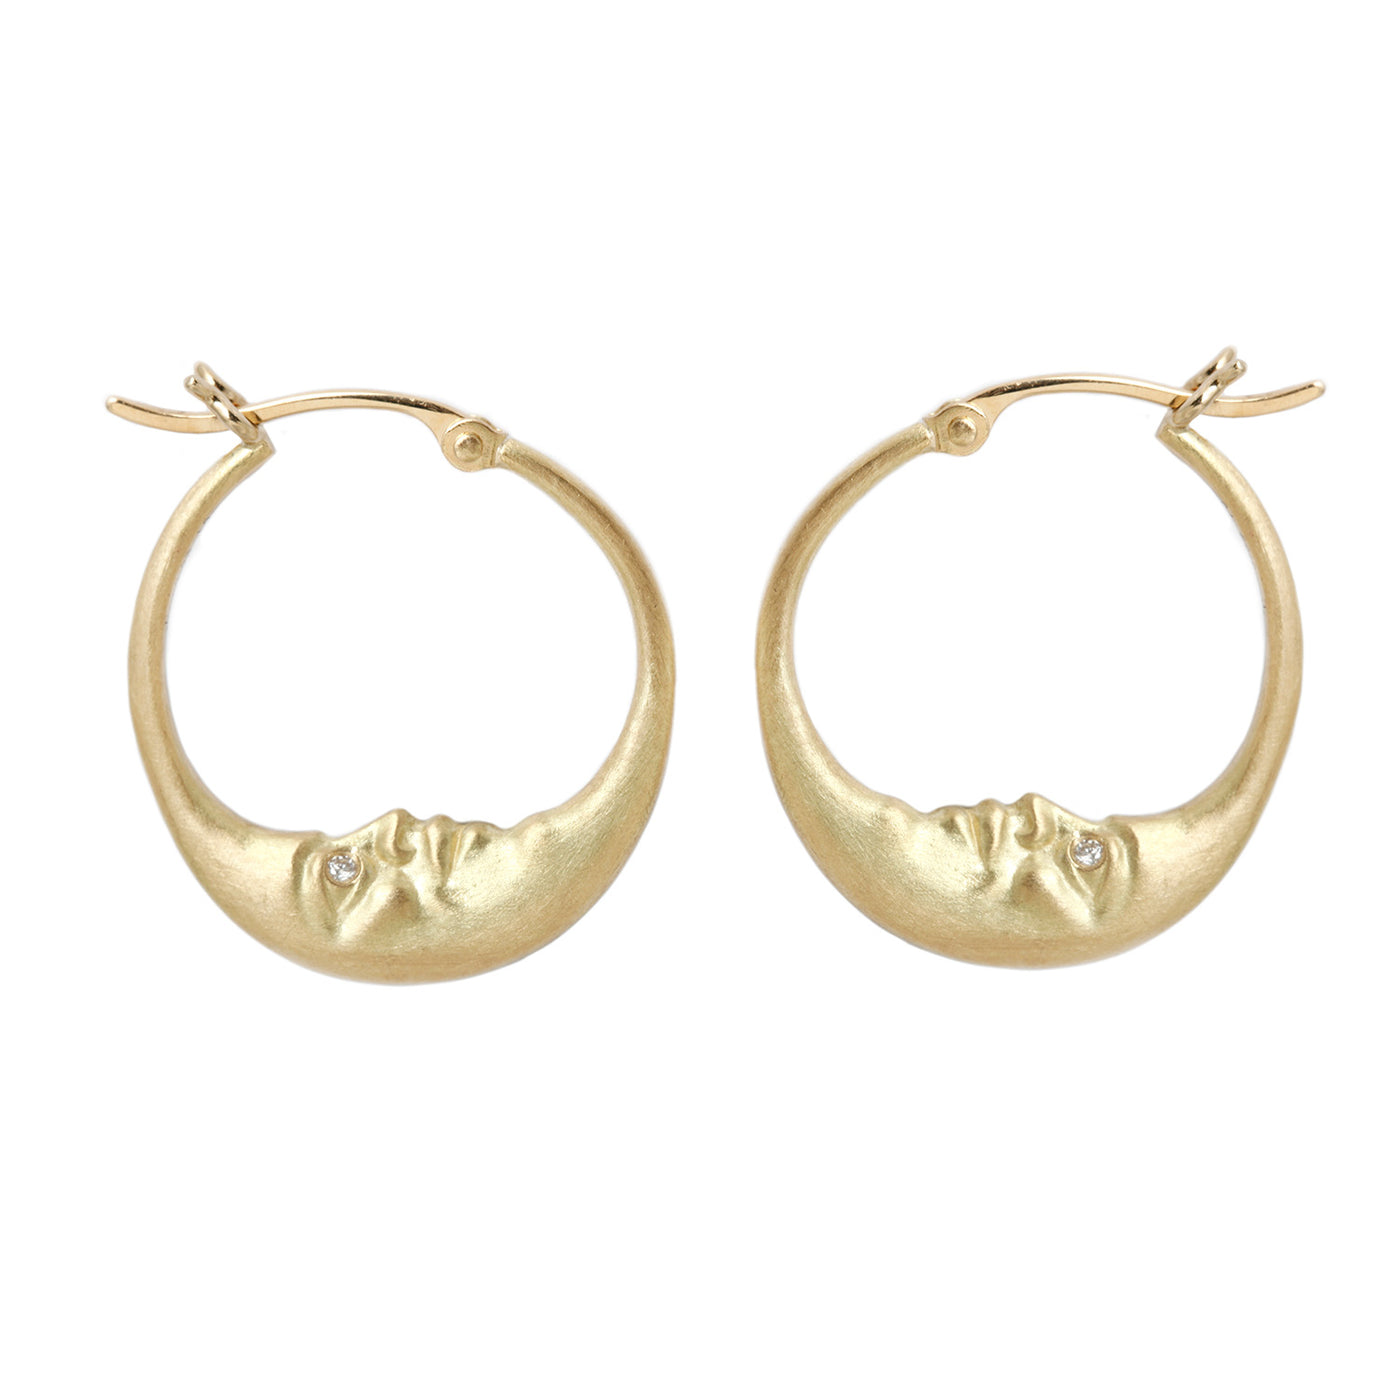 Anthony Lent Gold Crescent Moon Hoop Earrings